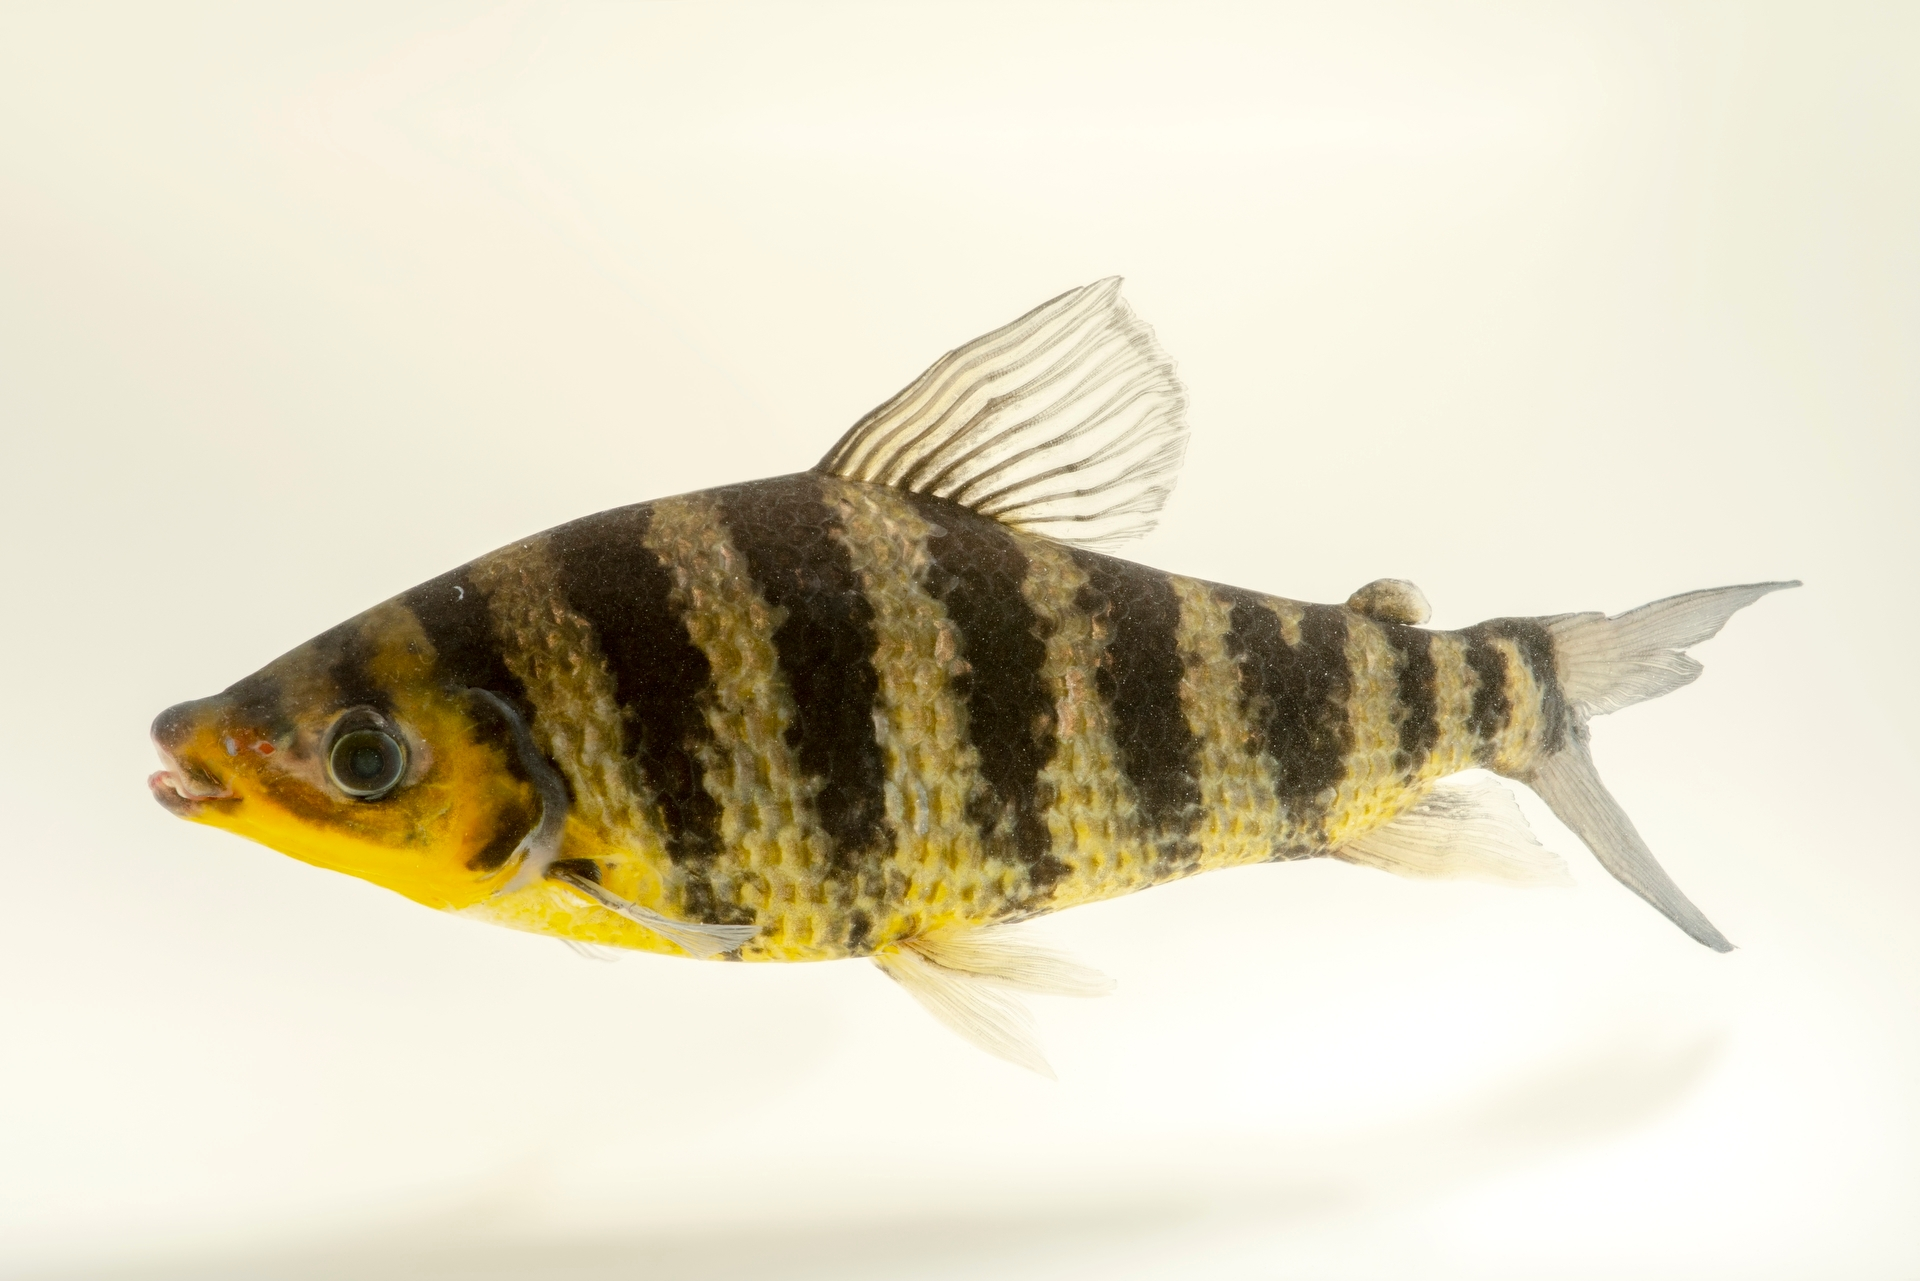 Photo: A banded leporinus (Leporinus fasciatus) at the Oklahoma City Zoo.